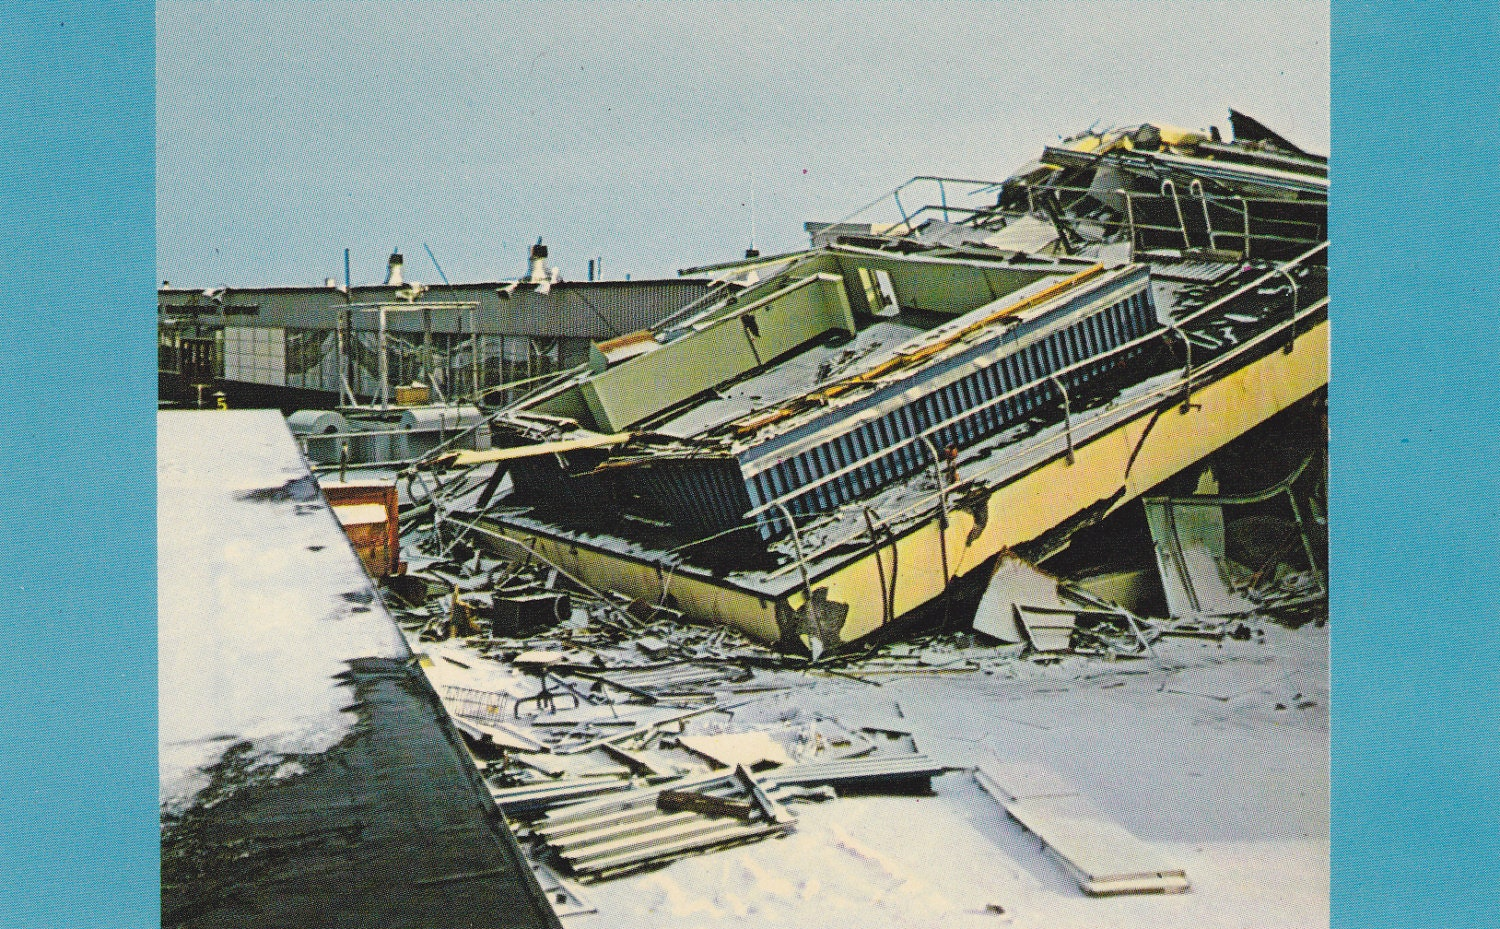 Co color art printing anchorage alaska - Great Alaskan Earthquake Of Good Friday 1964 1960s Vintage Chrome Postcard Anchorage Alaska Control Tower Ruins Plastichrome Ephemera